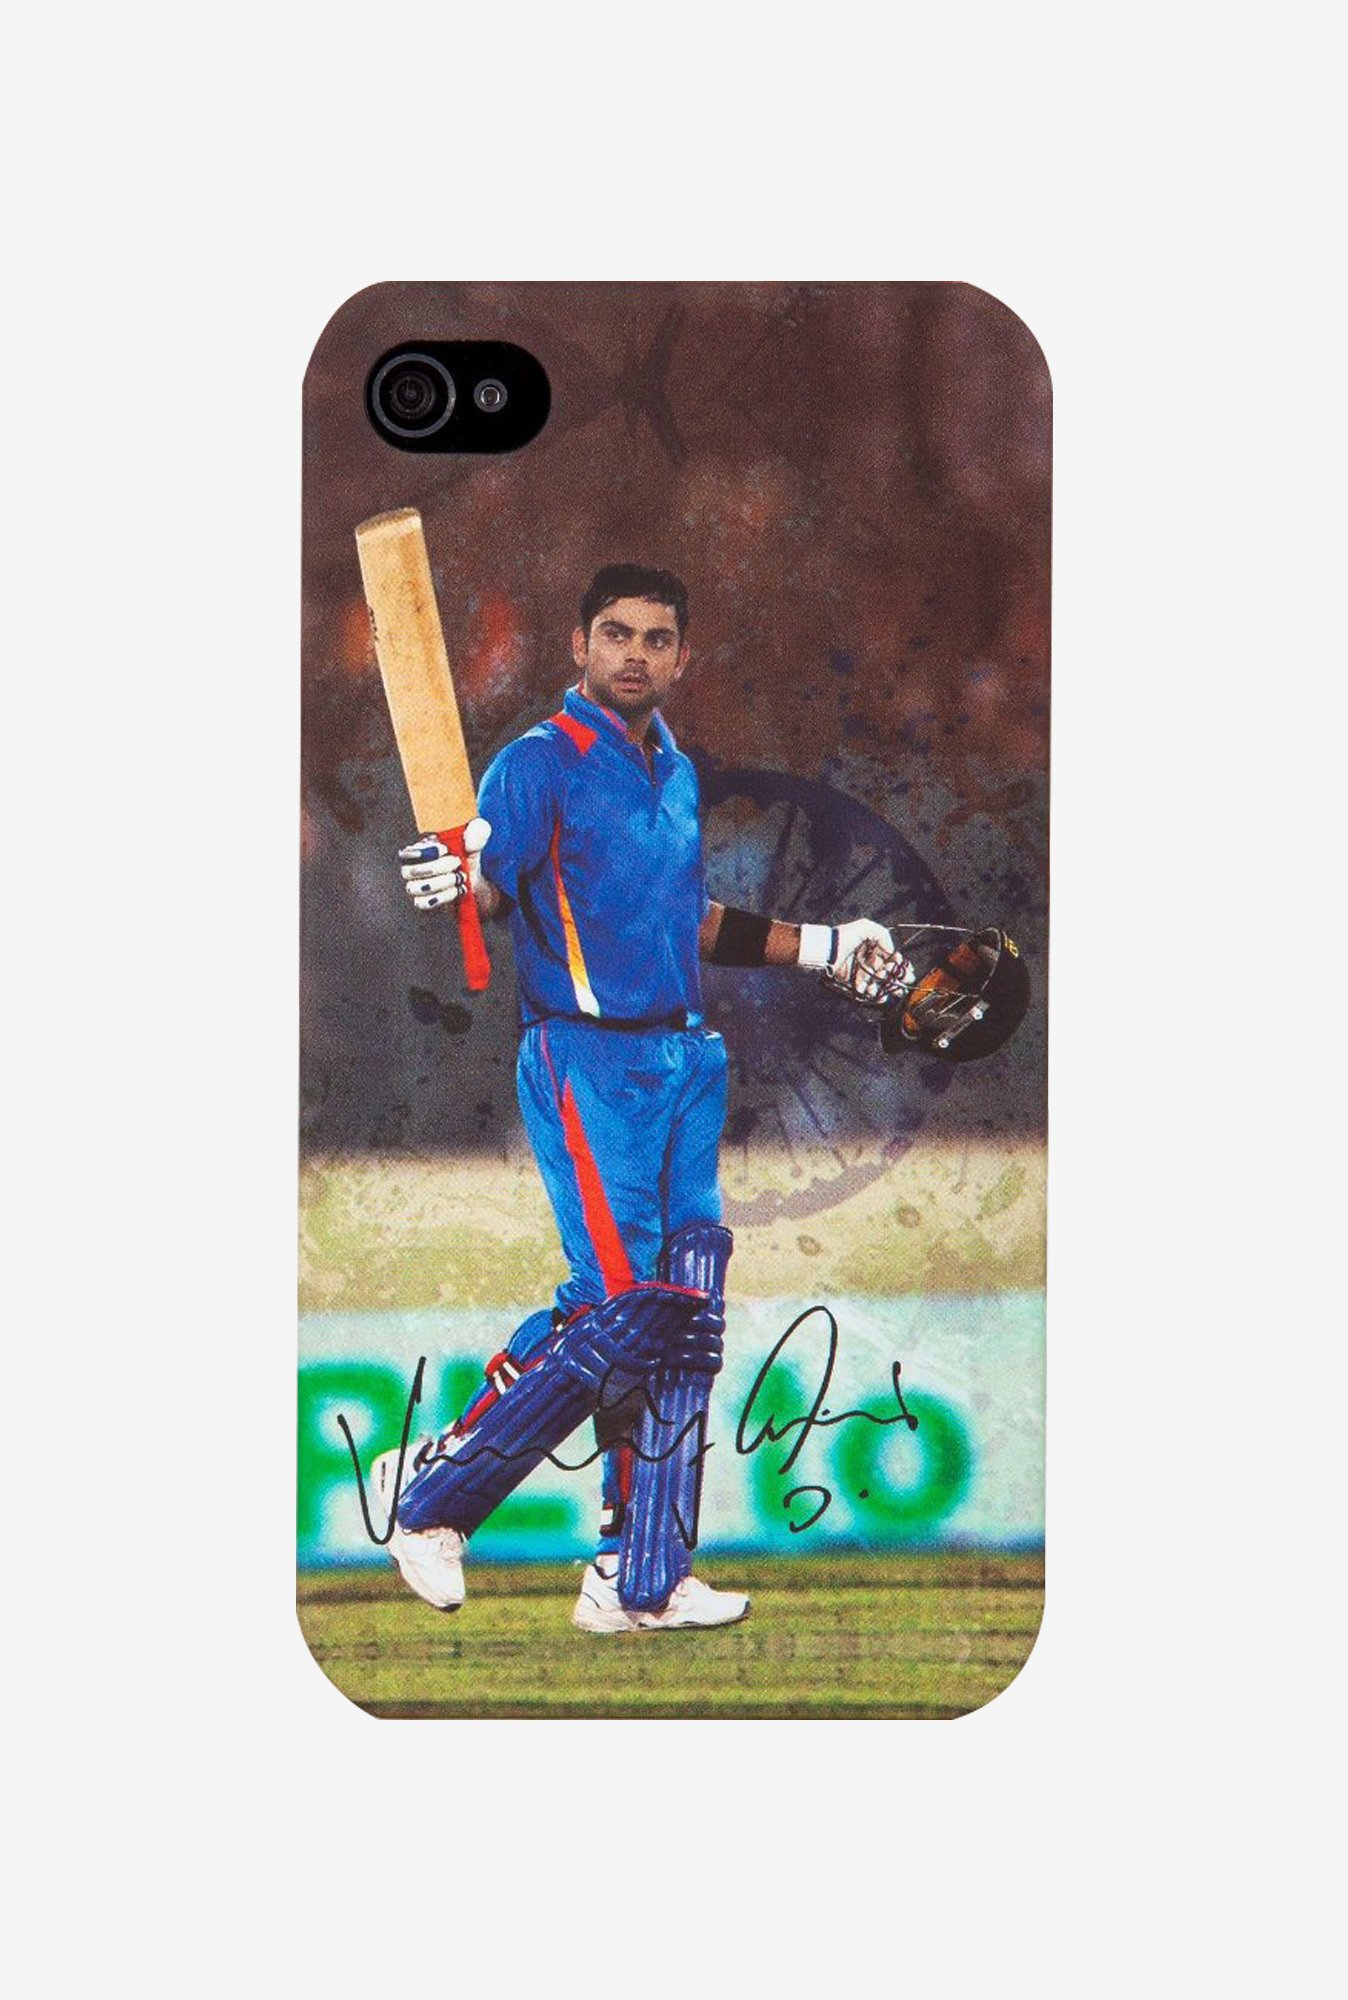 iAccy Virat Kohli Signature Case Multicolor for iPhone 4/4S